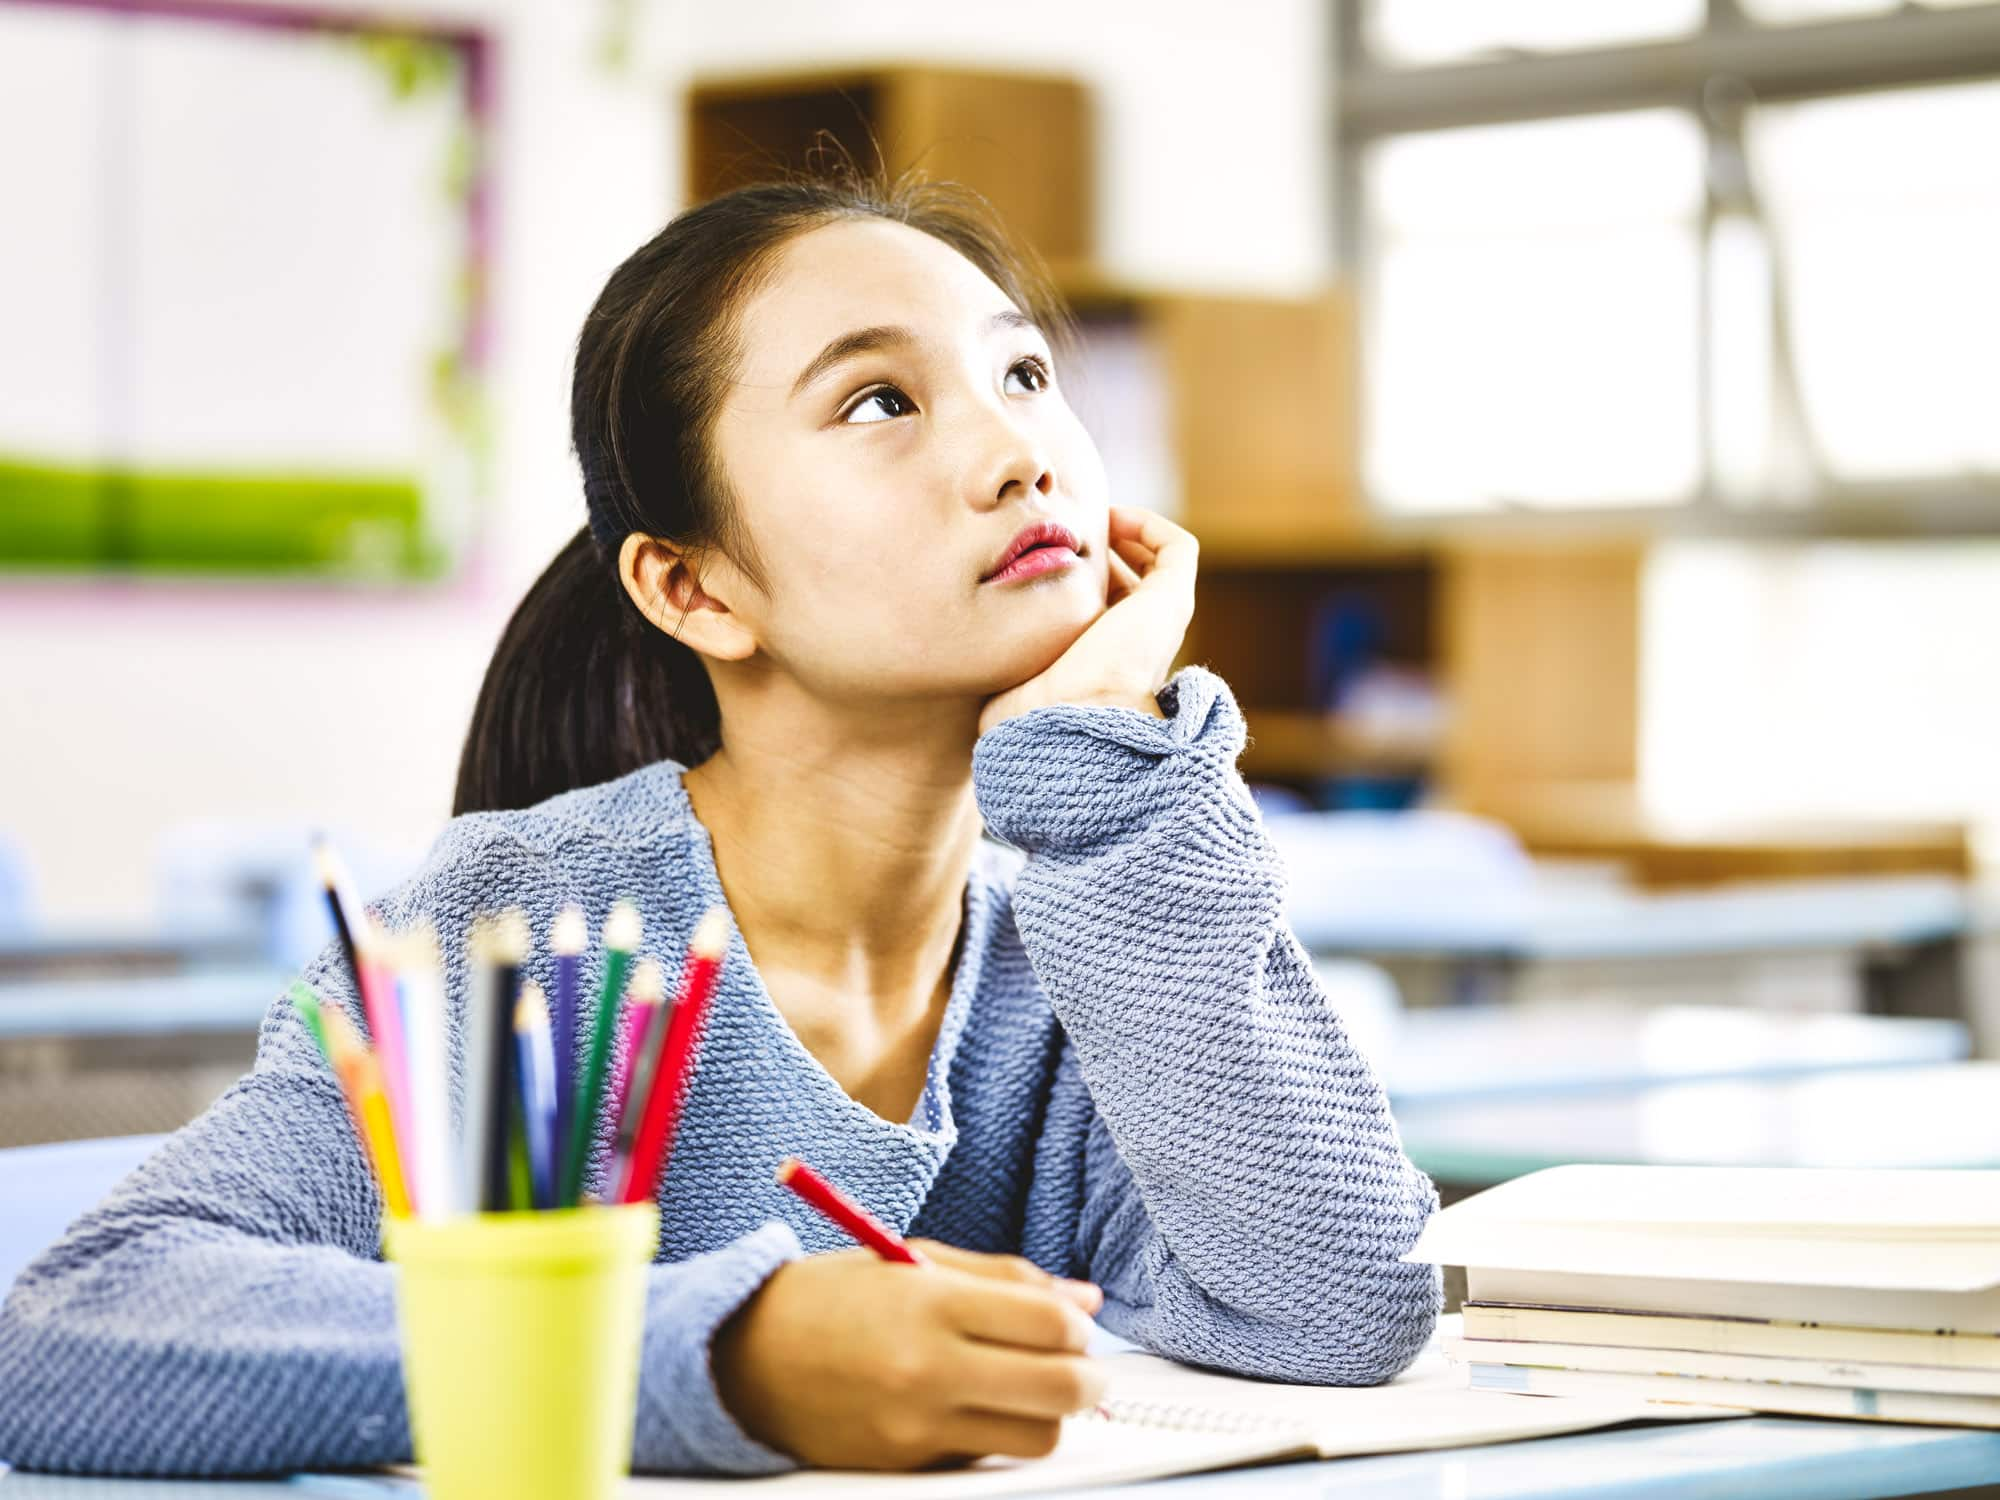 asian elementary schoolgirl looking up and thinking while studying in classroom_